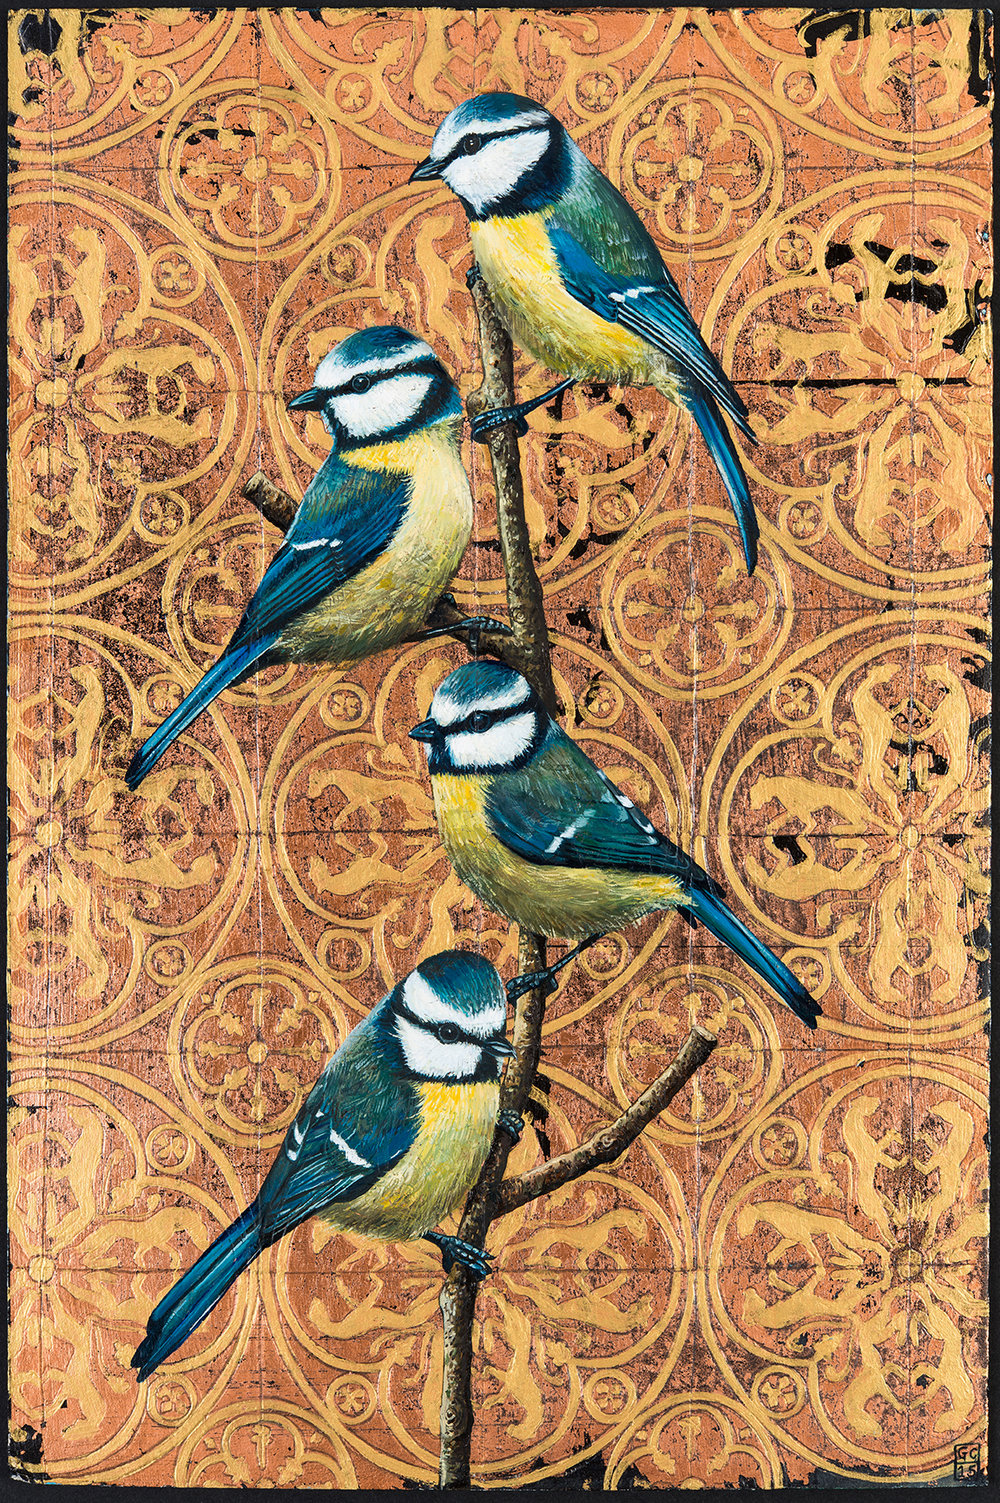 'Blue Tits on Copper', 37.5 cm x 25 cm, Oil and Metal Leaf on Board, 2015, SOLD